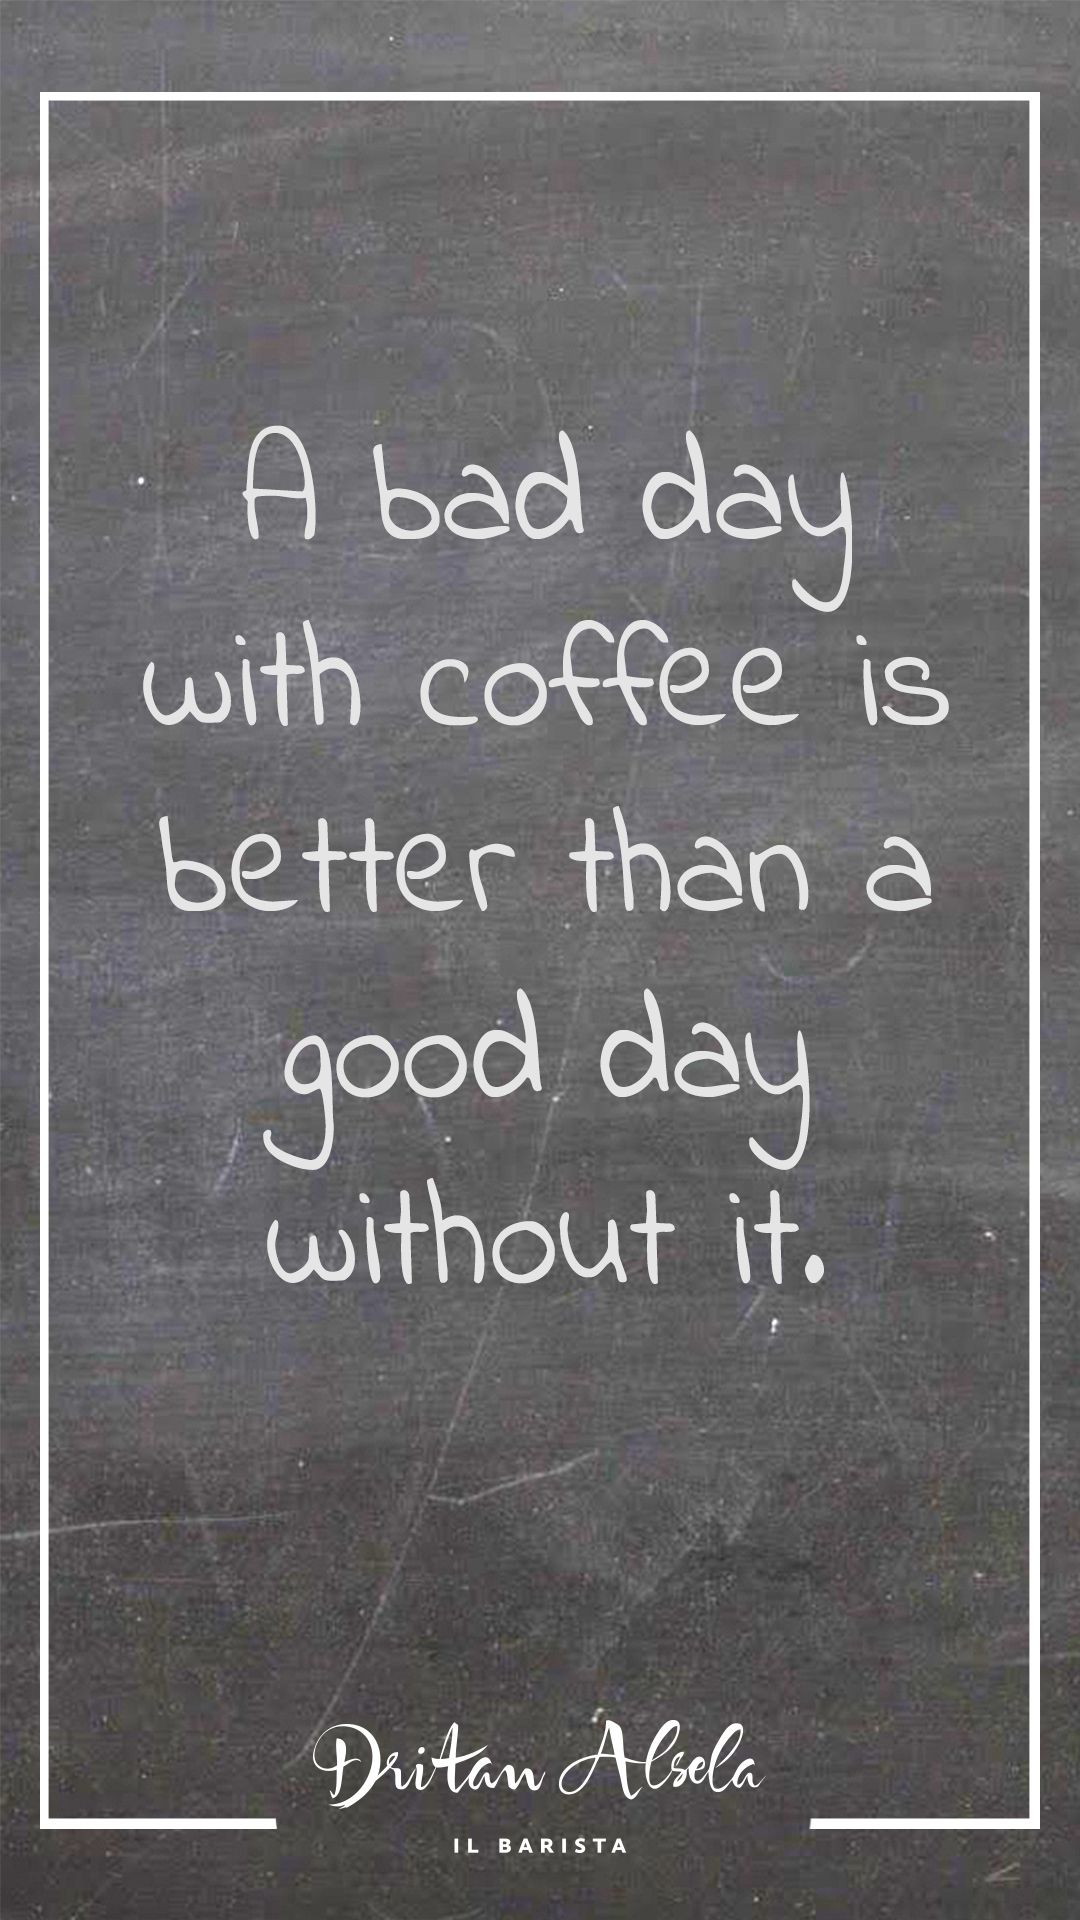 A bad day with coffee is better than a good day without it